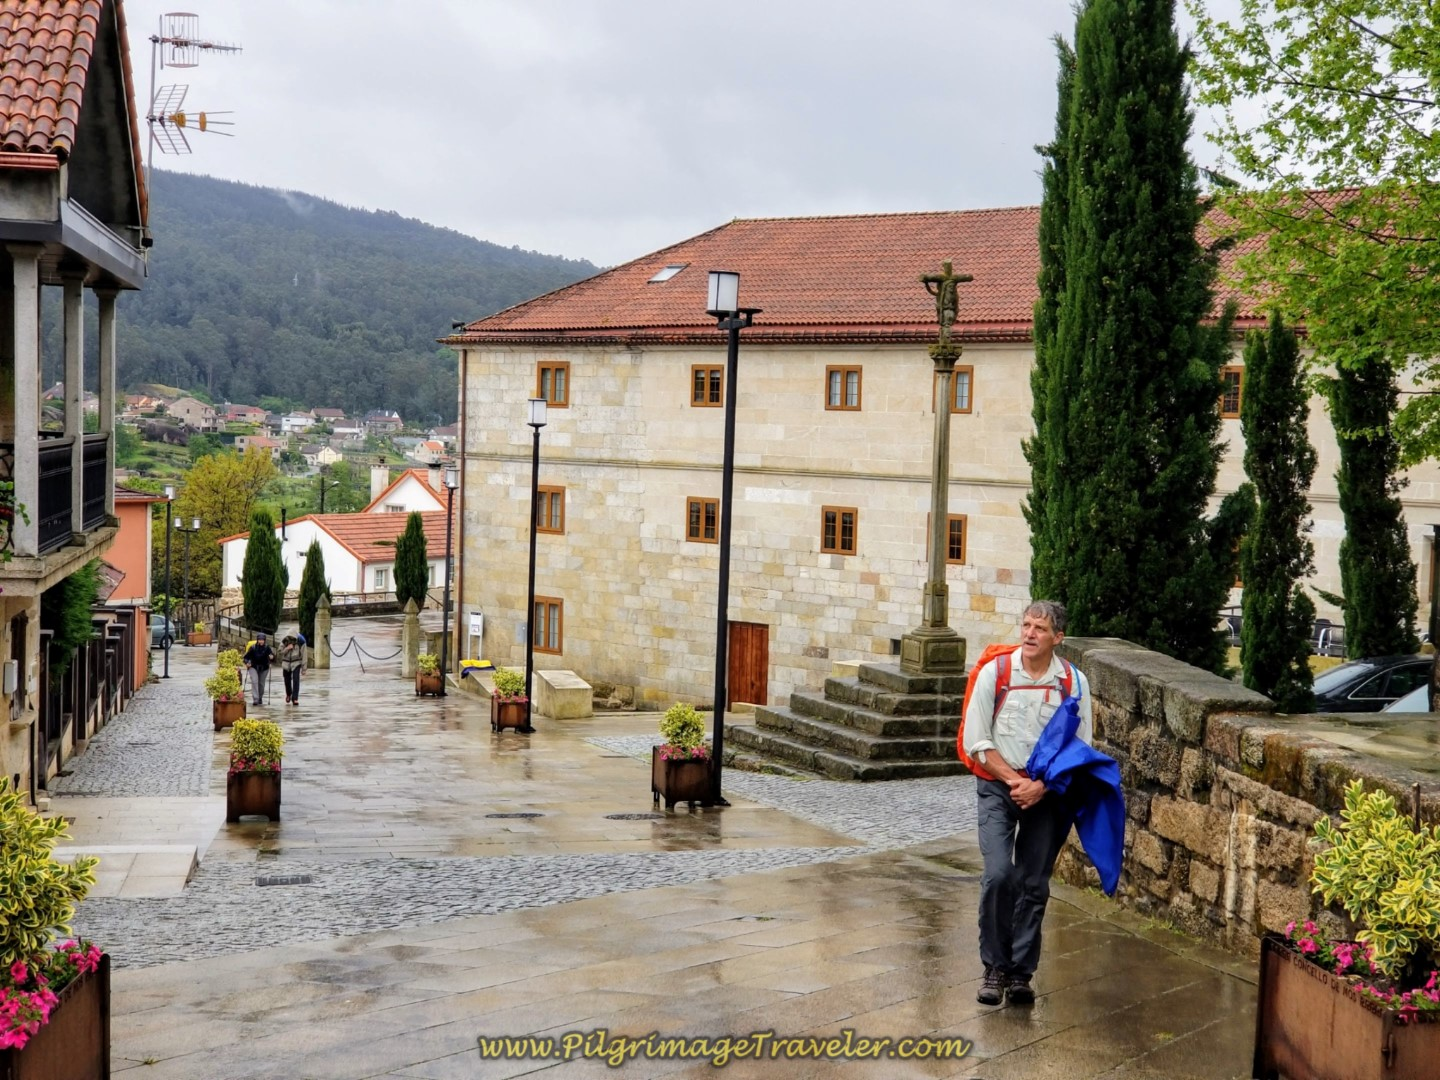 Rich Climbs on the Pedestrian Way in the Town of Mos on day twenty-one of the central route of the Portuguese Camino